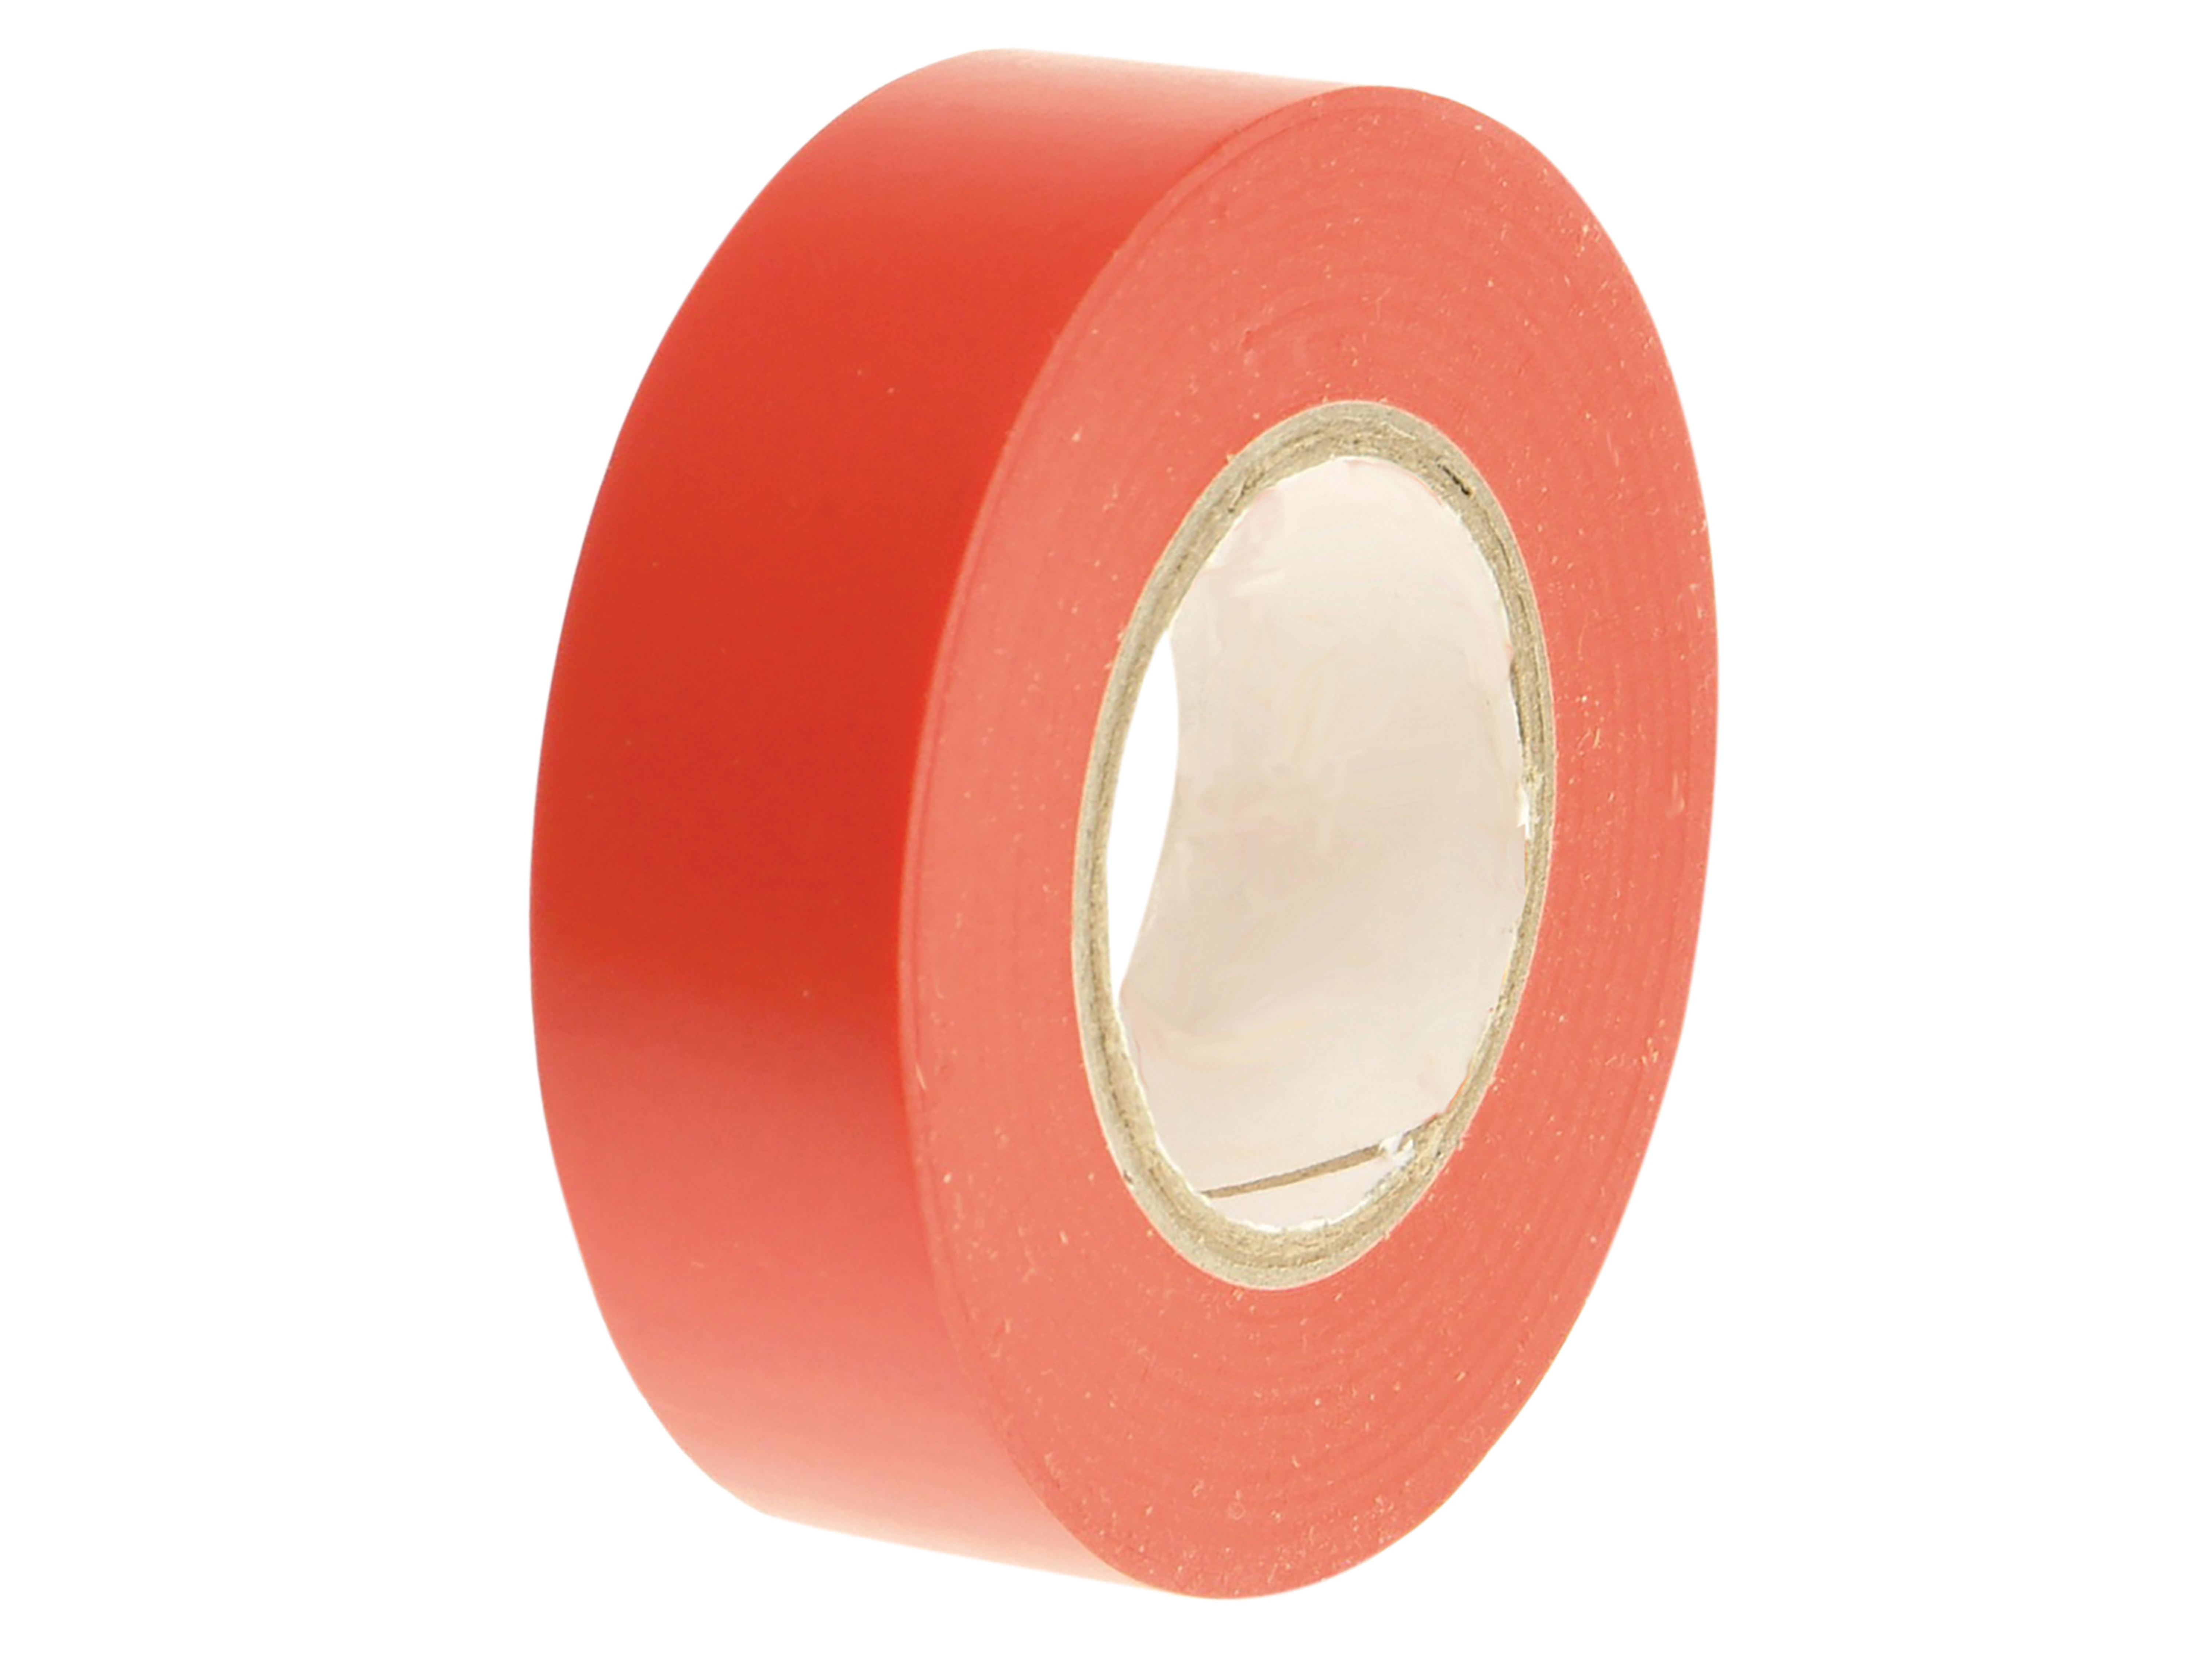 INSULATING TAPE 16mmx16m FLAME RETARDANT RED ELECTRICAL PVC INSULATION